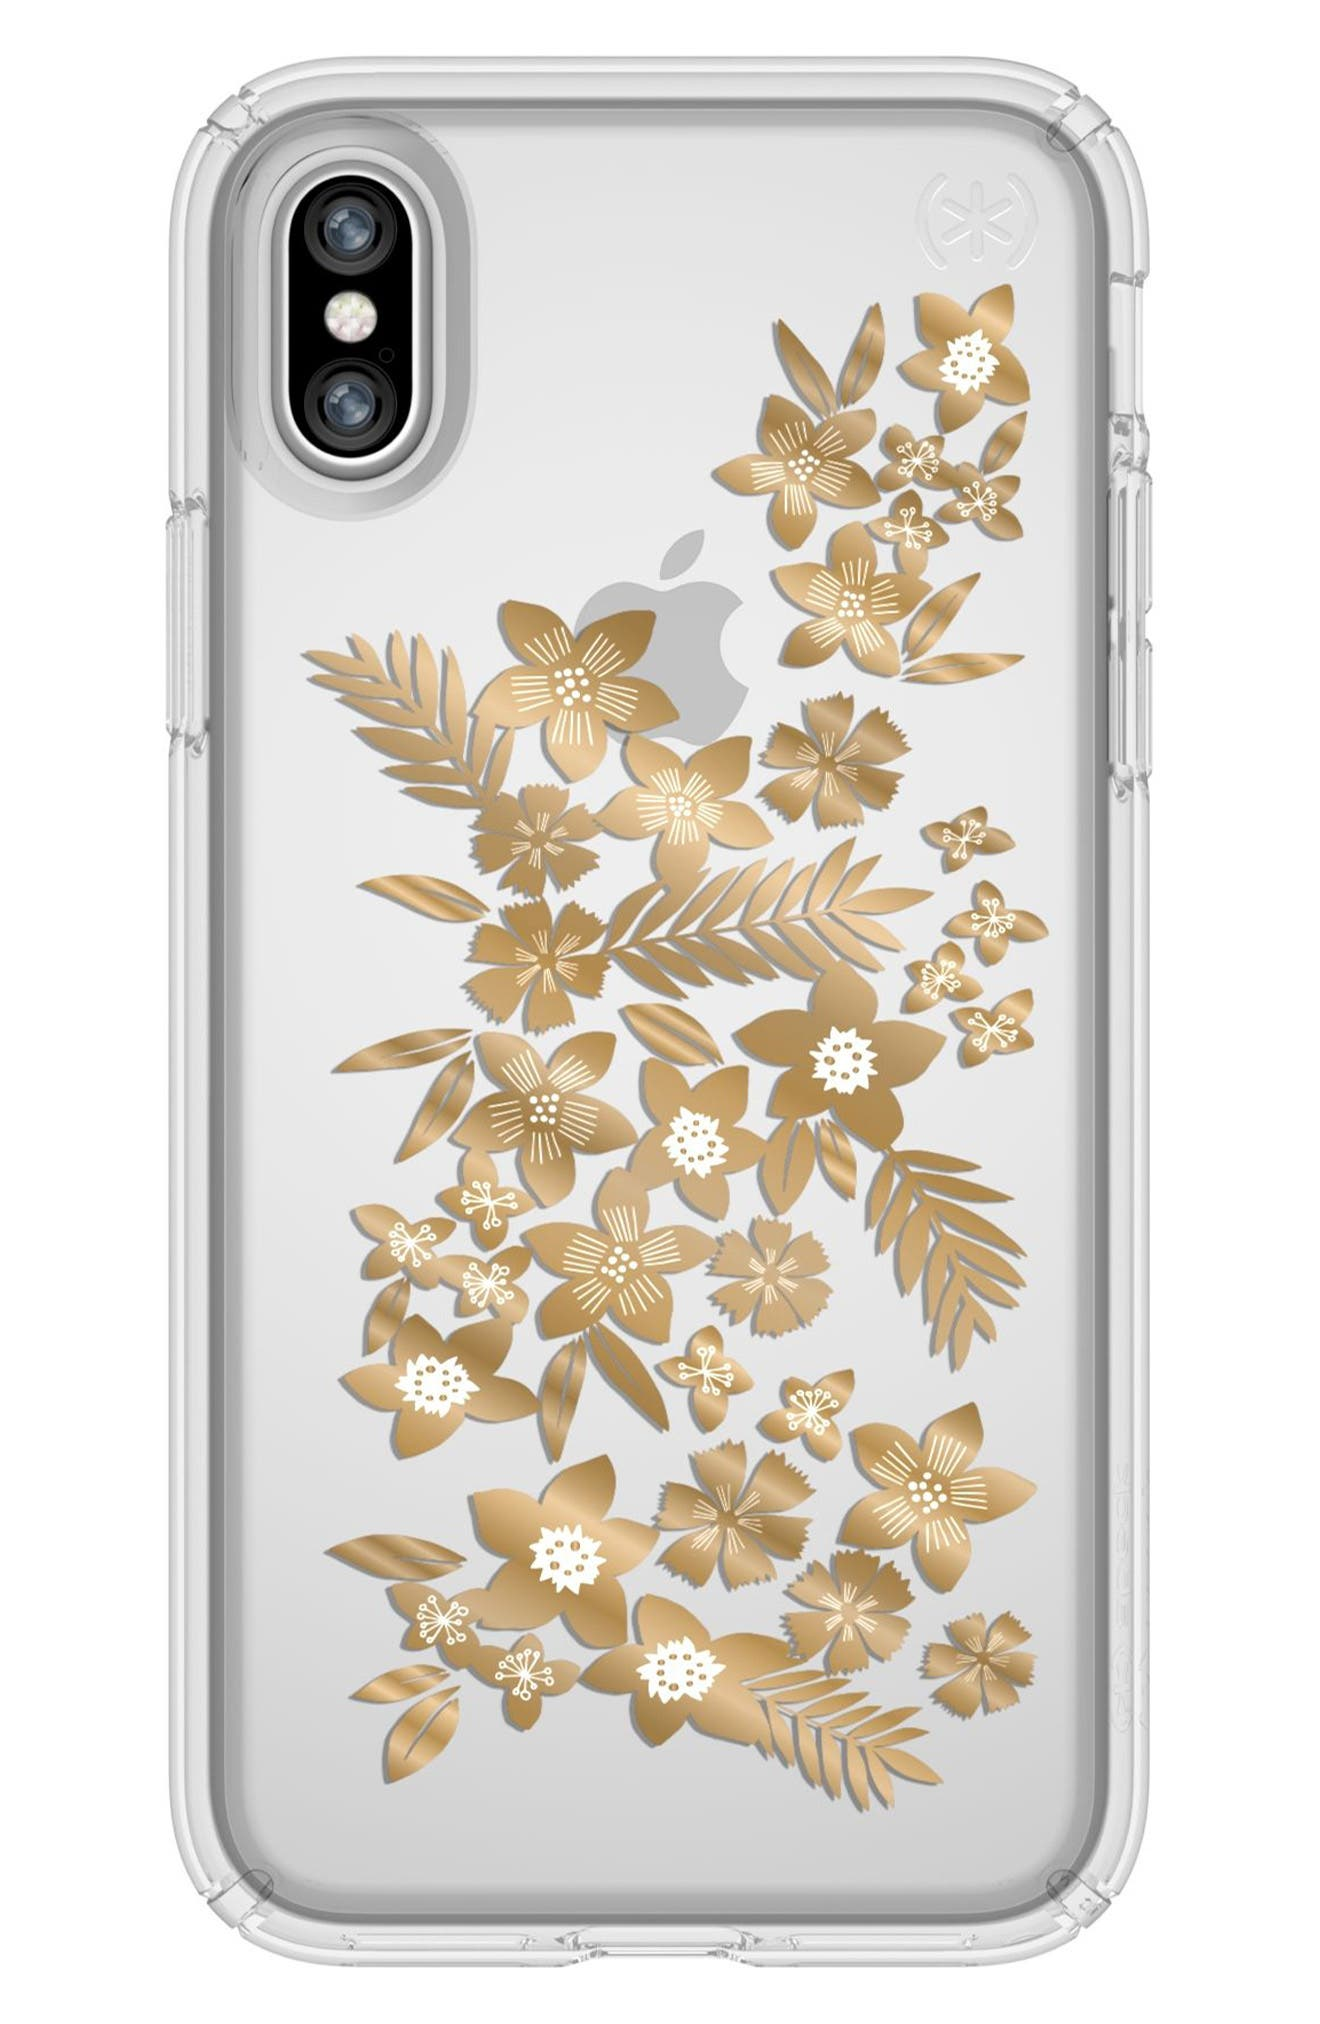 Shimmer Metallic Floral Transparent iPhone X Case,                         Main,                         color, Shimmer Floral Metallic/ Clear